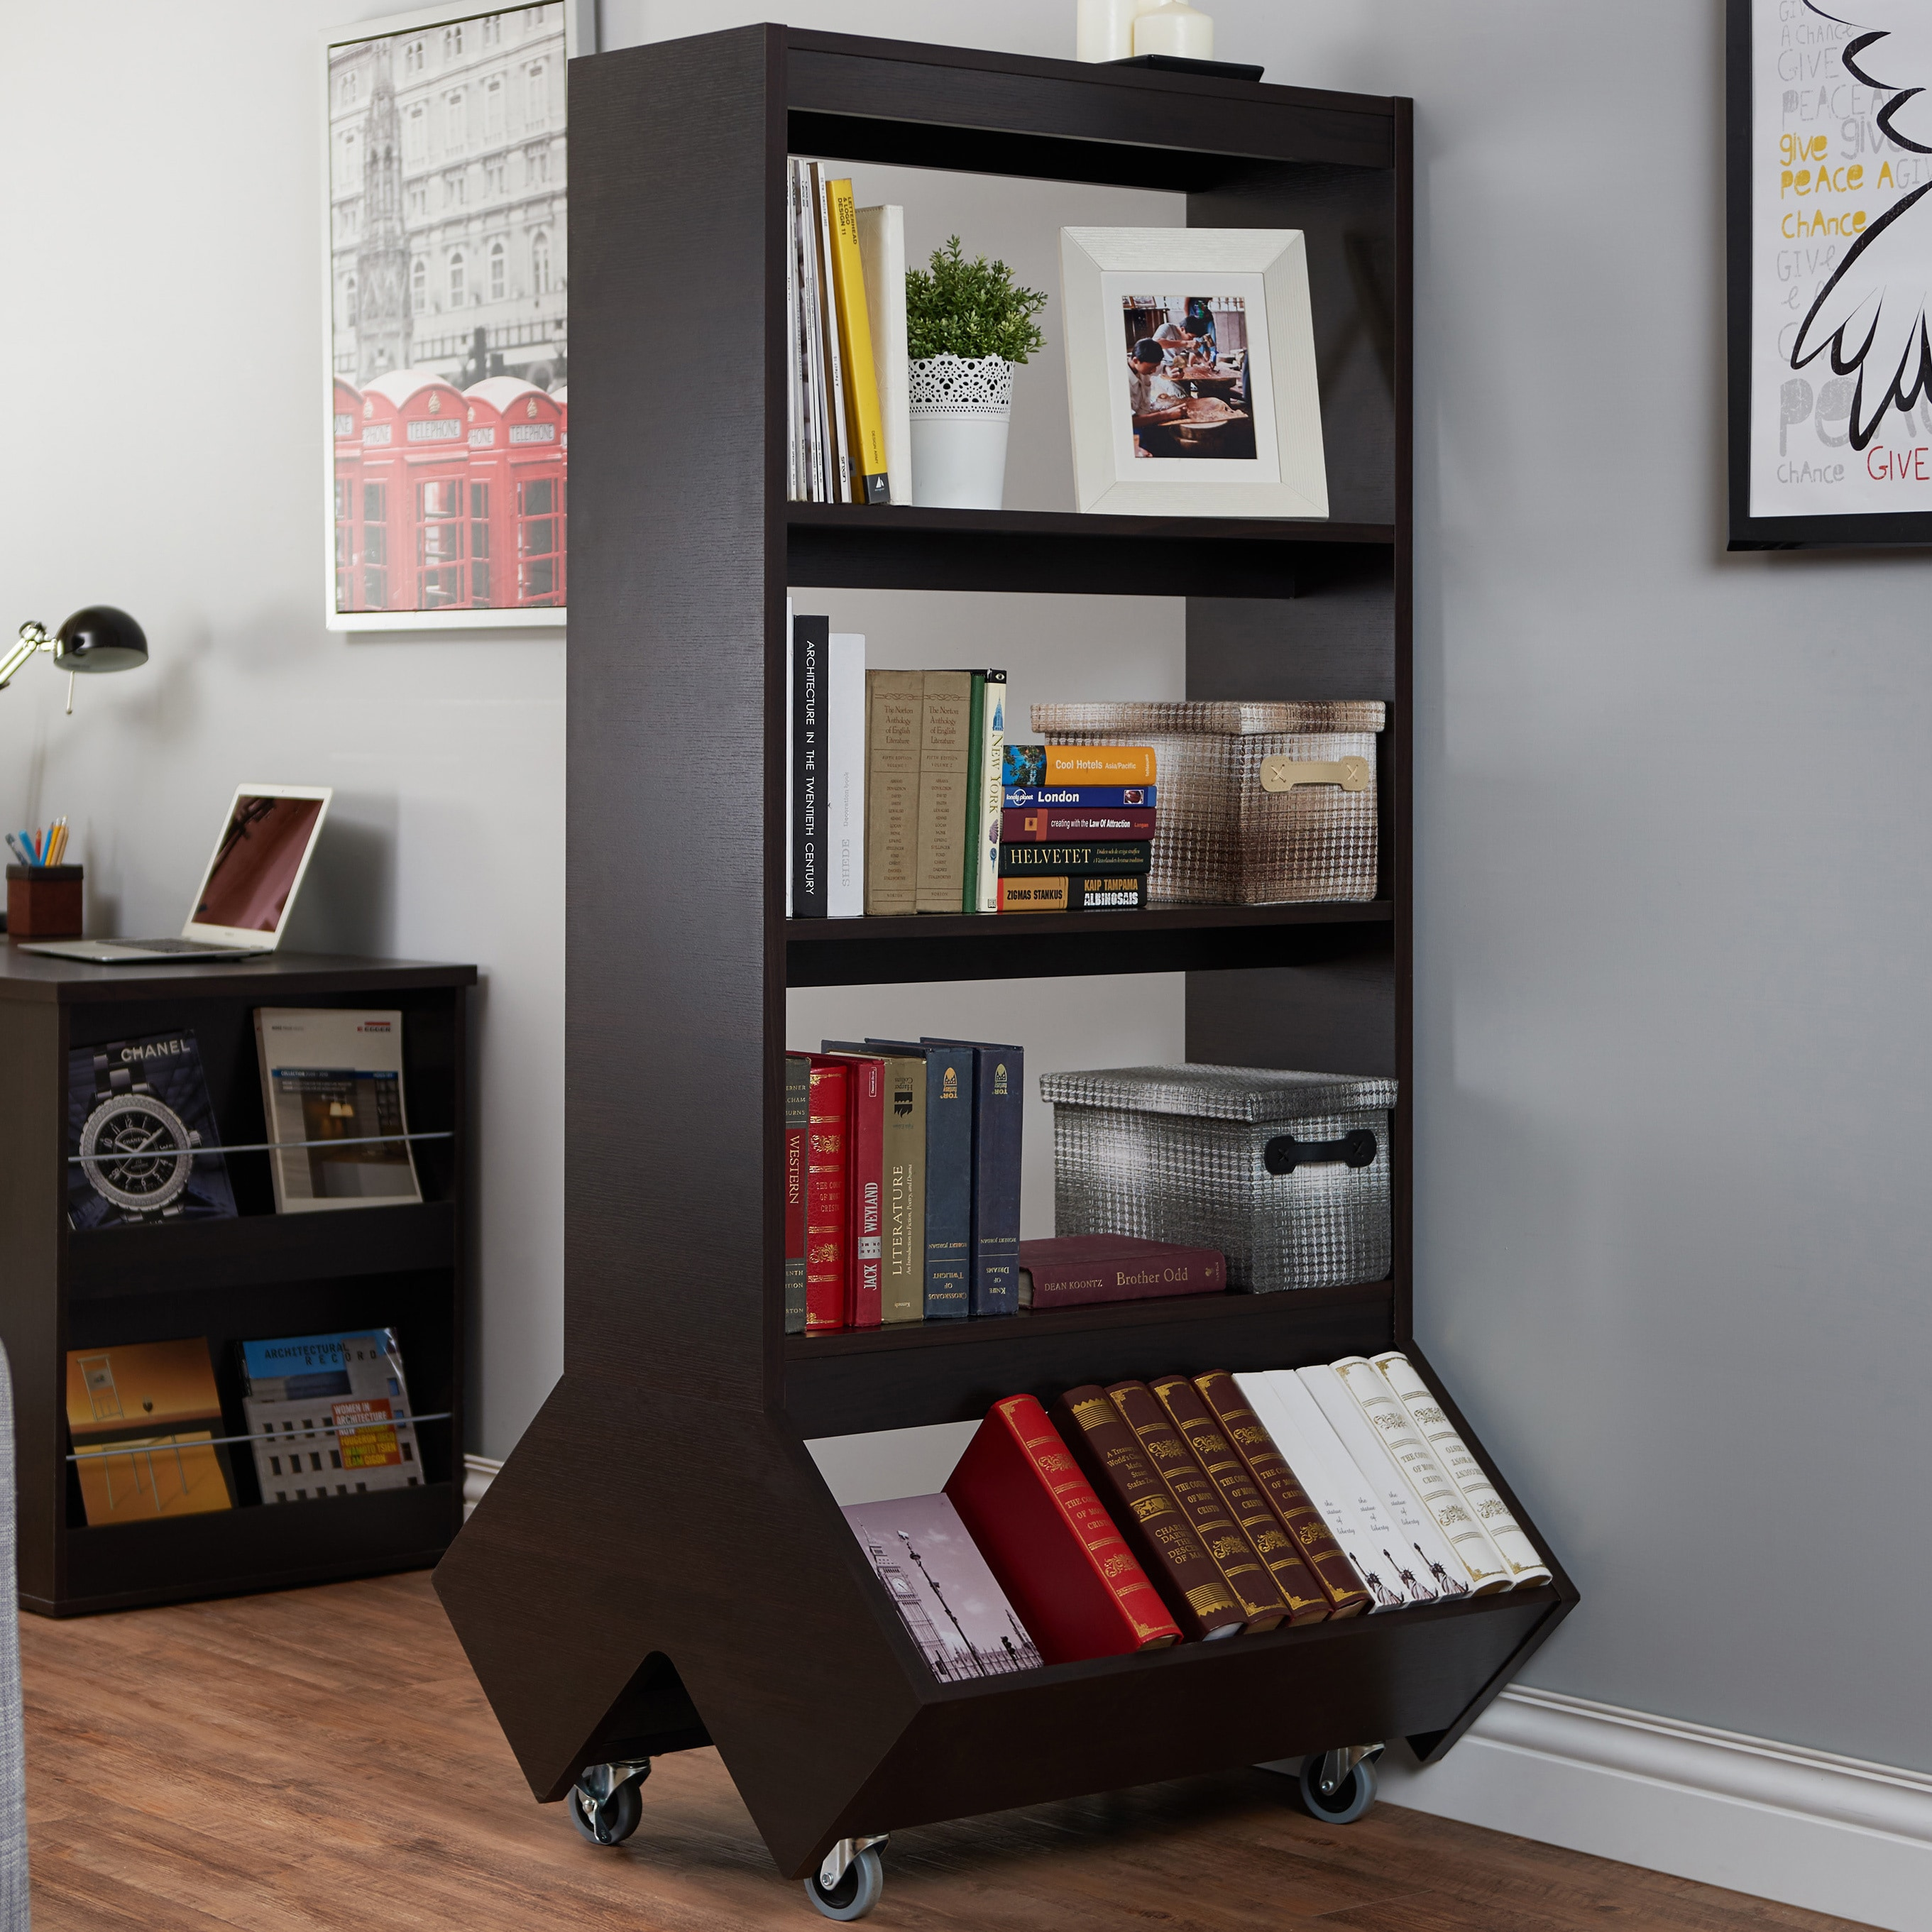 to room pin it bookcase divider ecleste dividers have com hayneedle